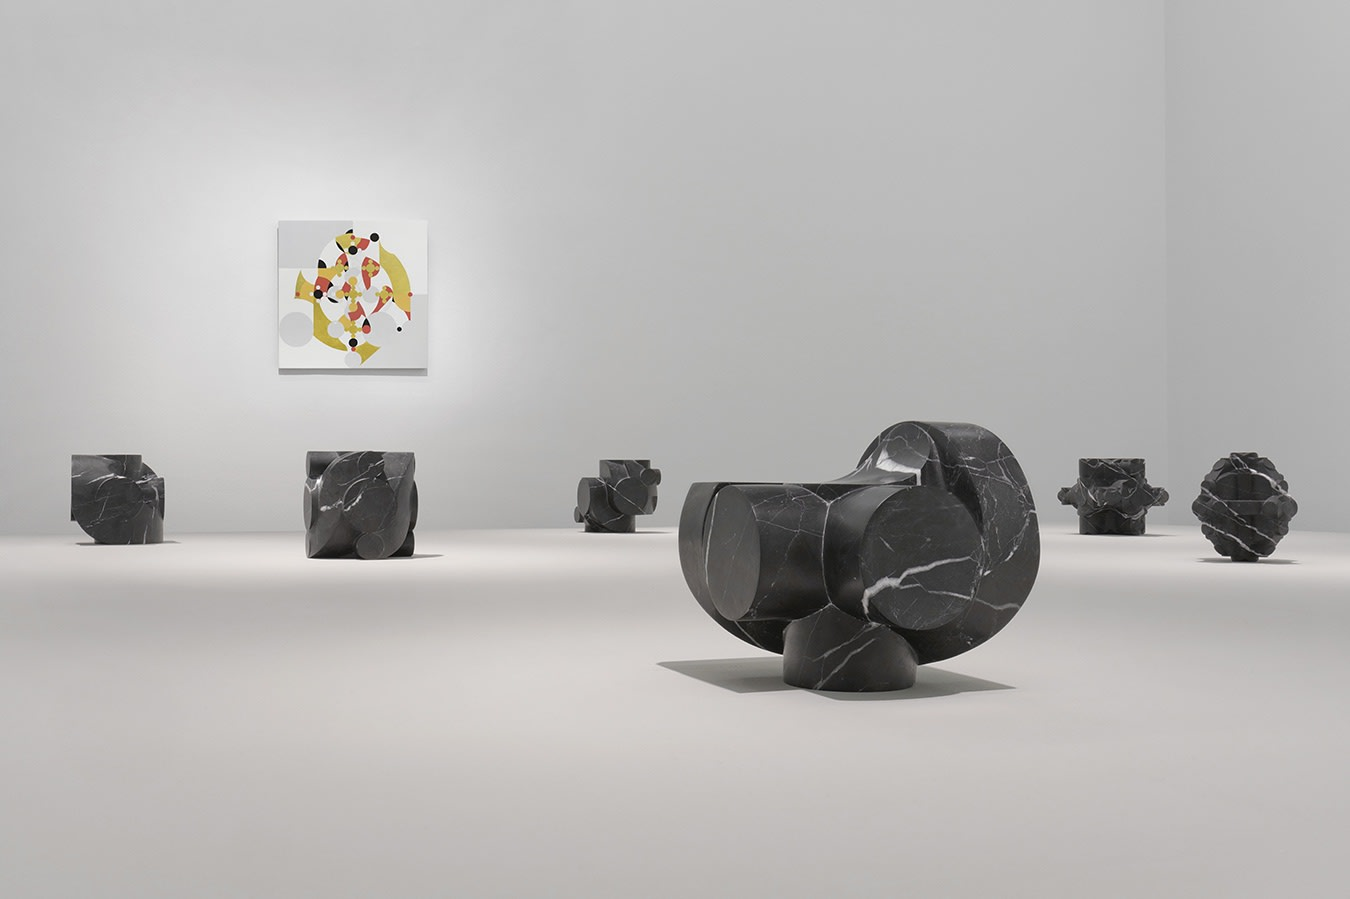 6 small stone sculptures in front of a colorful abstract painting on a white wall.